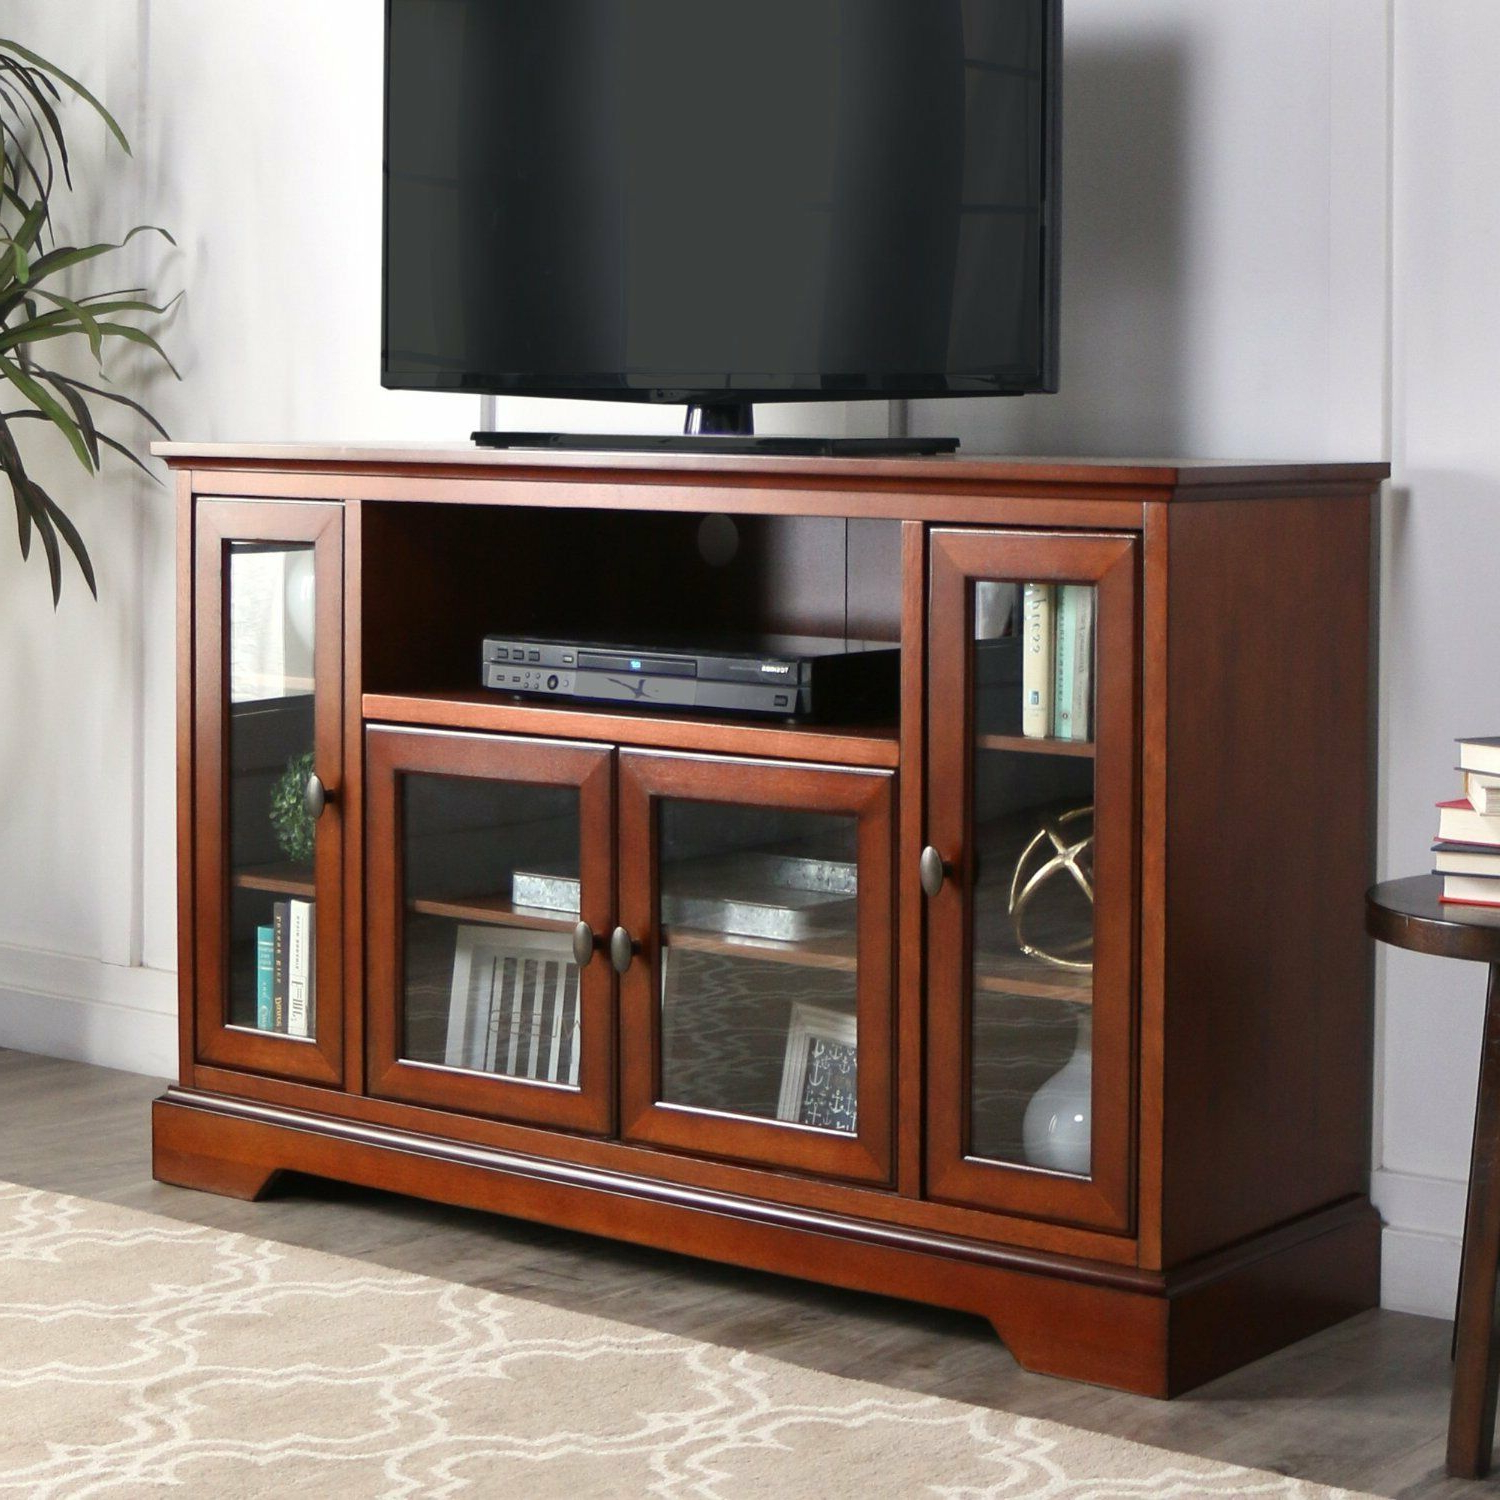 "Trendy Rustic Furniture Tv Stands Intended For Walker Furniture 52"" Tv Console Rustic Brown Highboy Wood Tv Stand (View 15 of 20)"